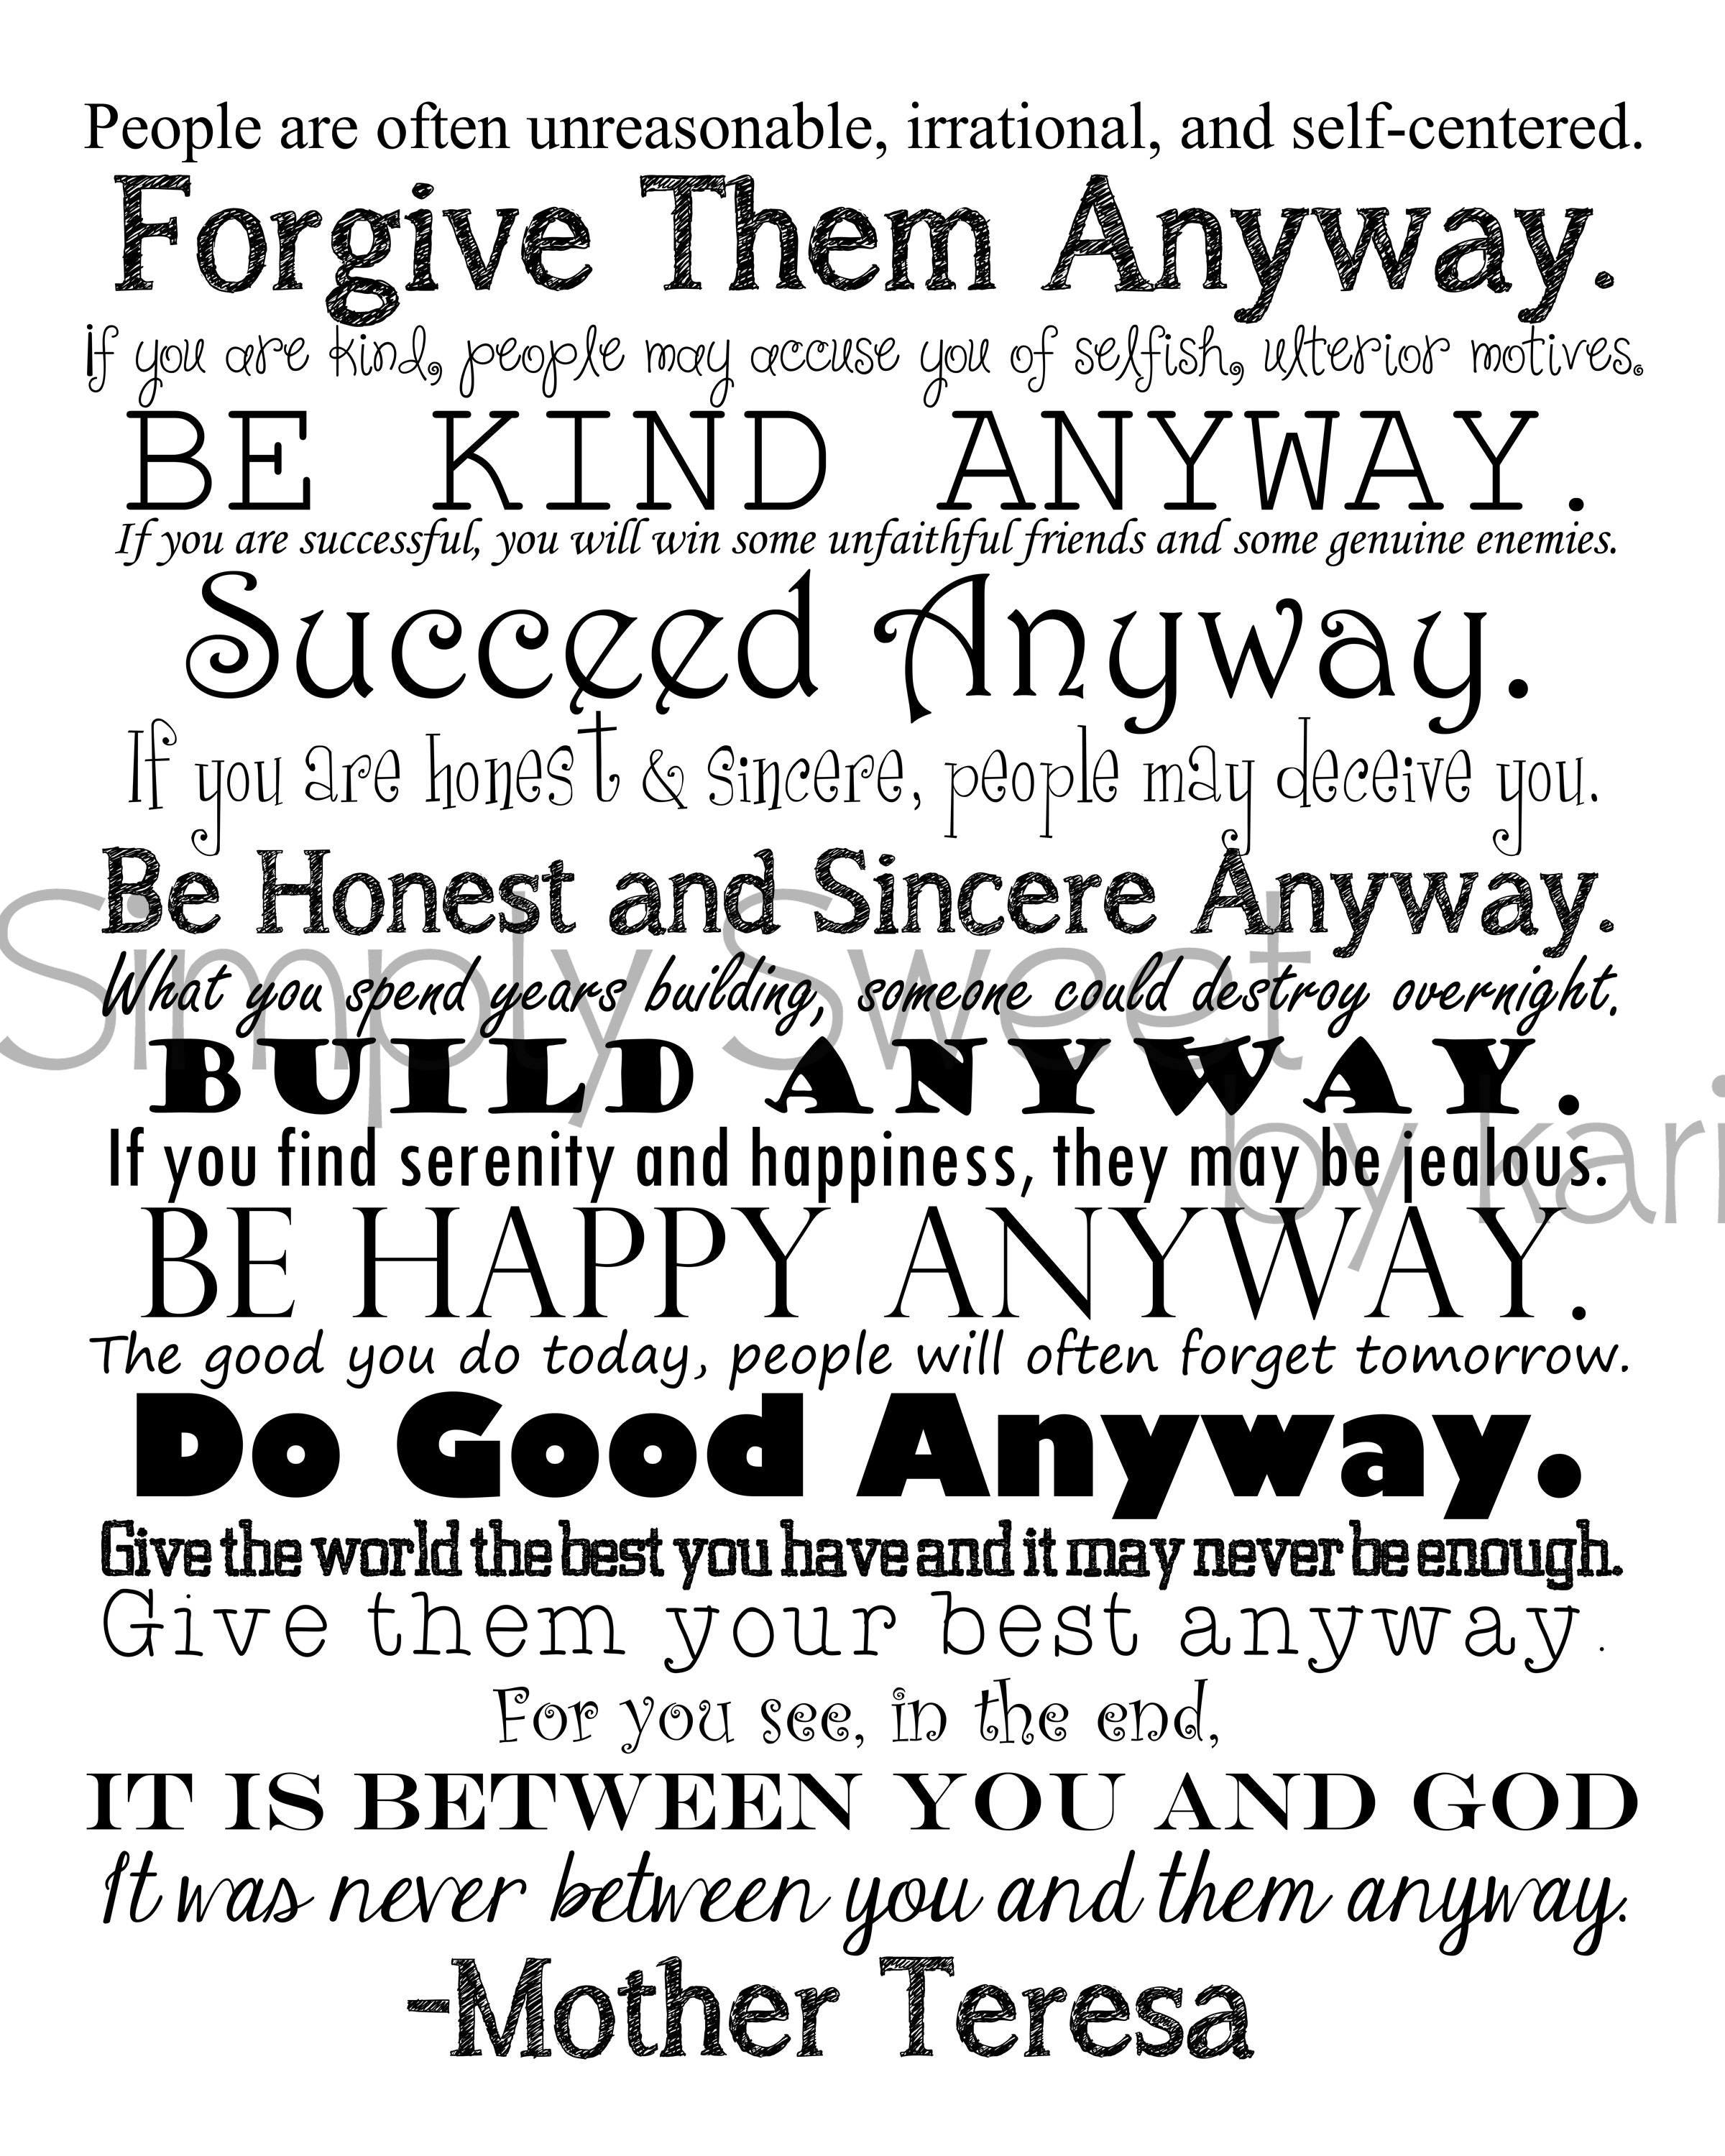 Mother Teresa Quotes Love Them Anyway Do It Anyway 8X10 Digital Download